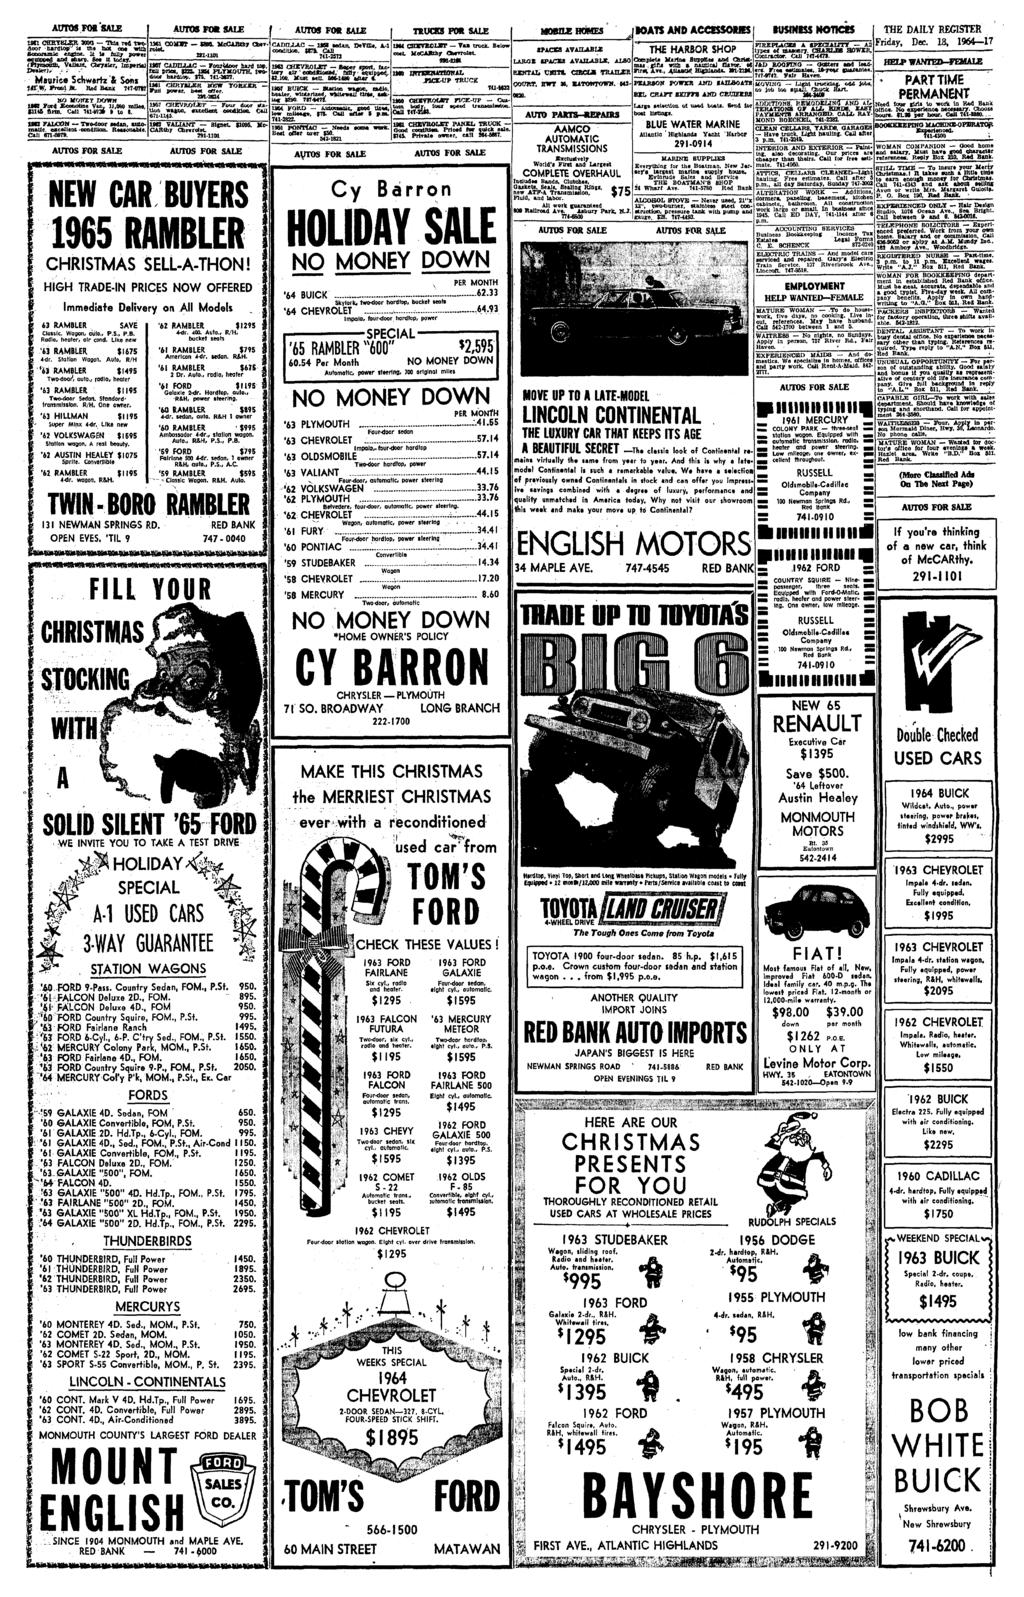 Northern Monmouths Home Newspaper Pdf Glove Compartment Wiring Diagram For 1956 Studebaker Passenger Car Models C K And J Aotos Fob Sale Autos Fosale New Buyers 1965 Rambler Christmas Sell A